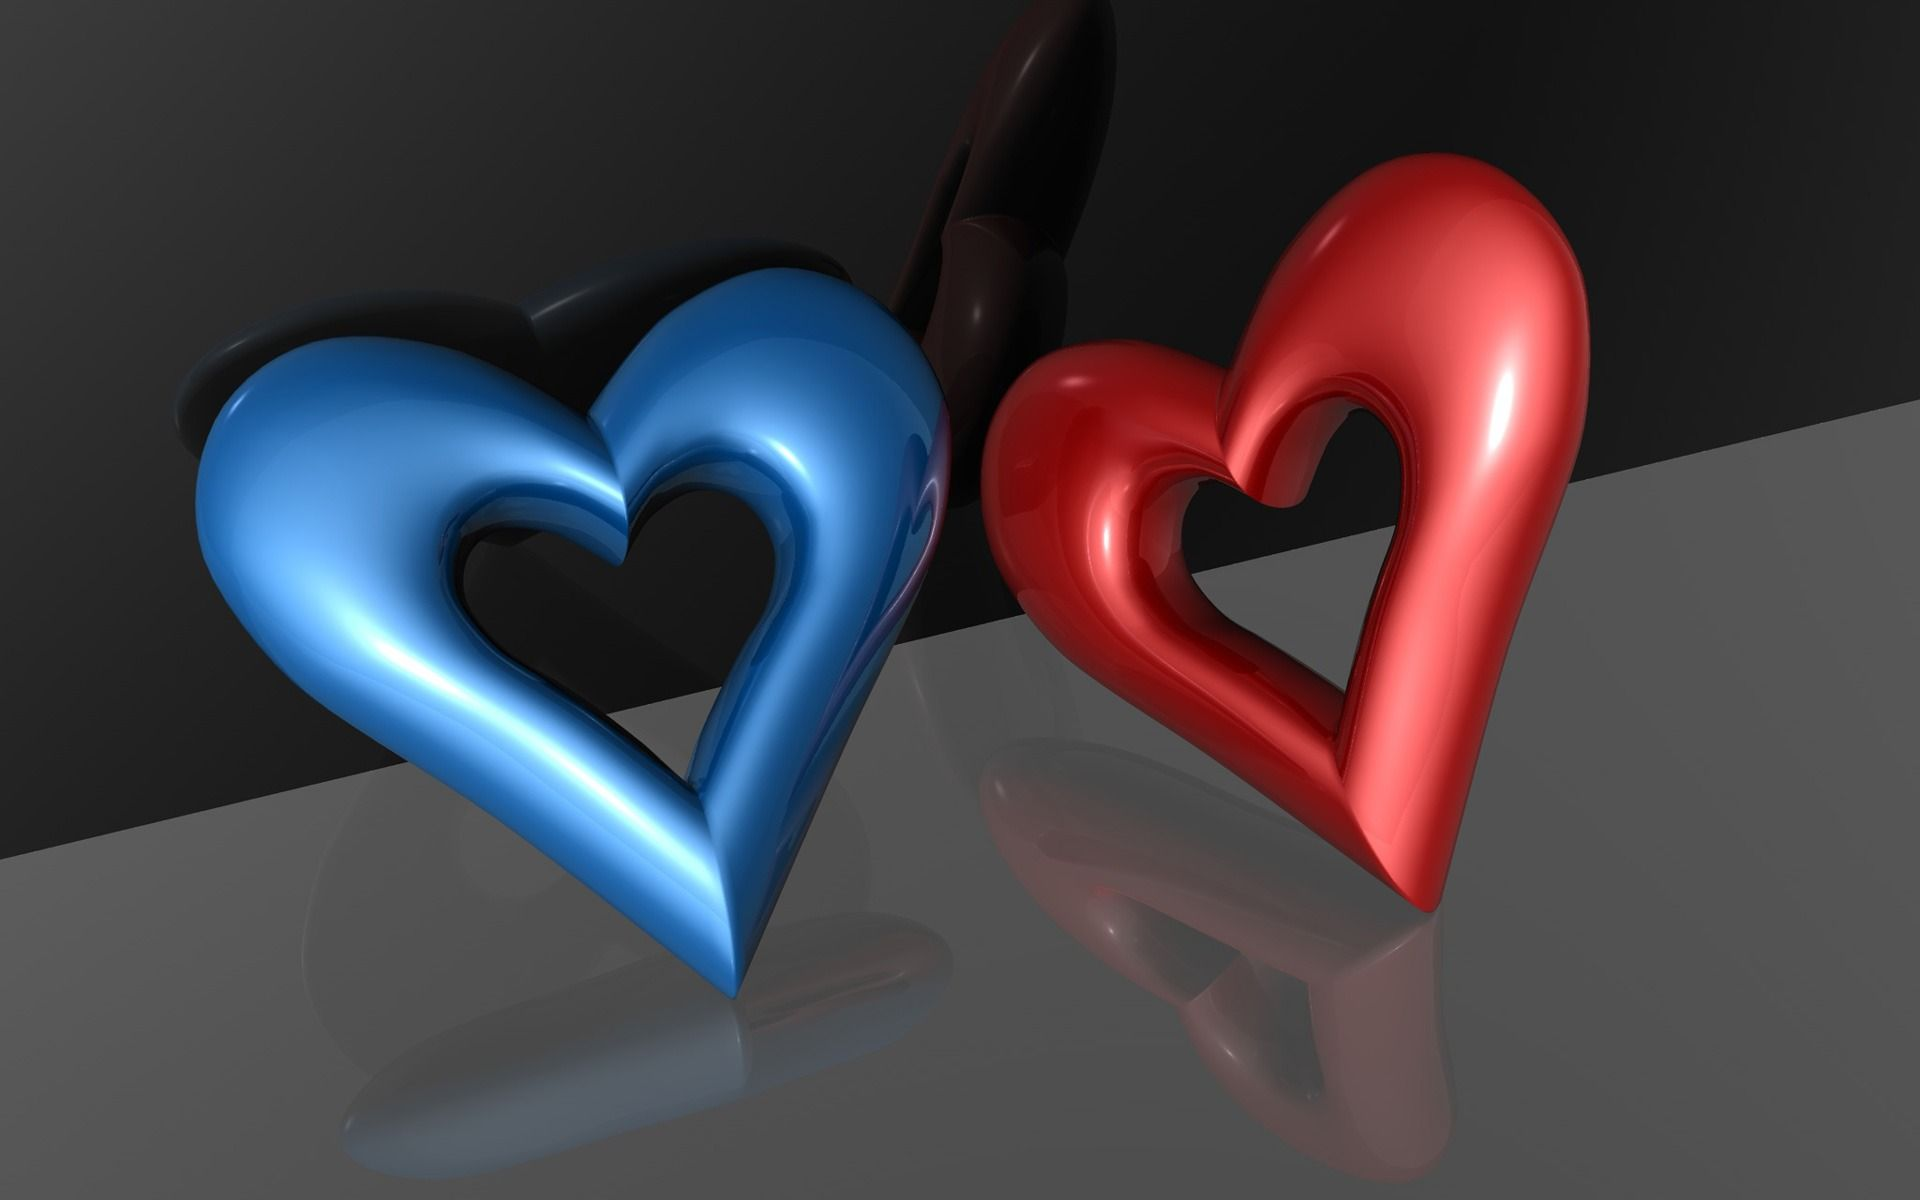 free wallpapers red and blue hearts wallpaper